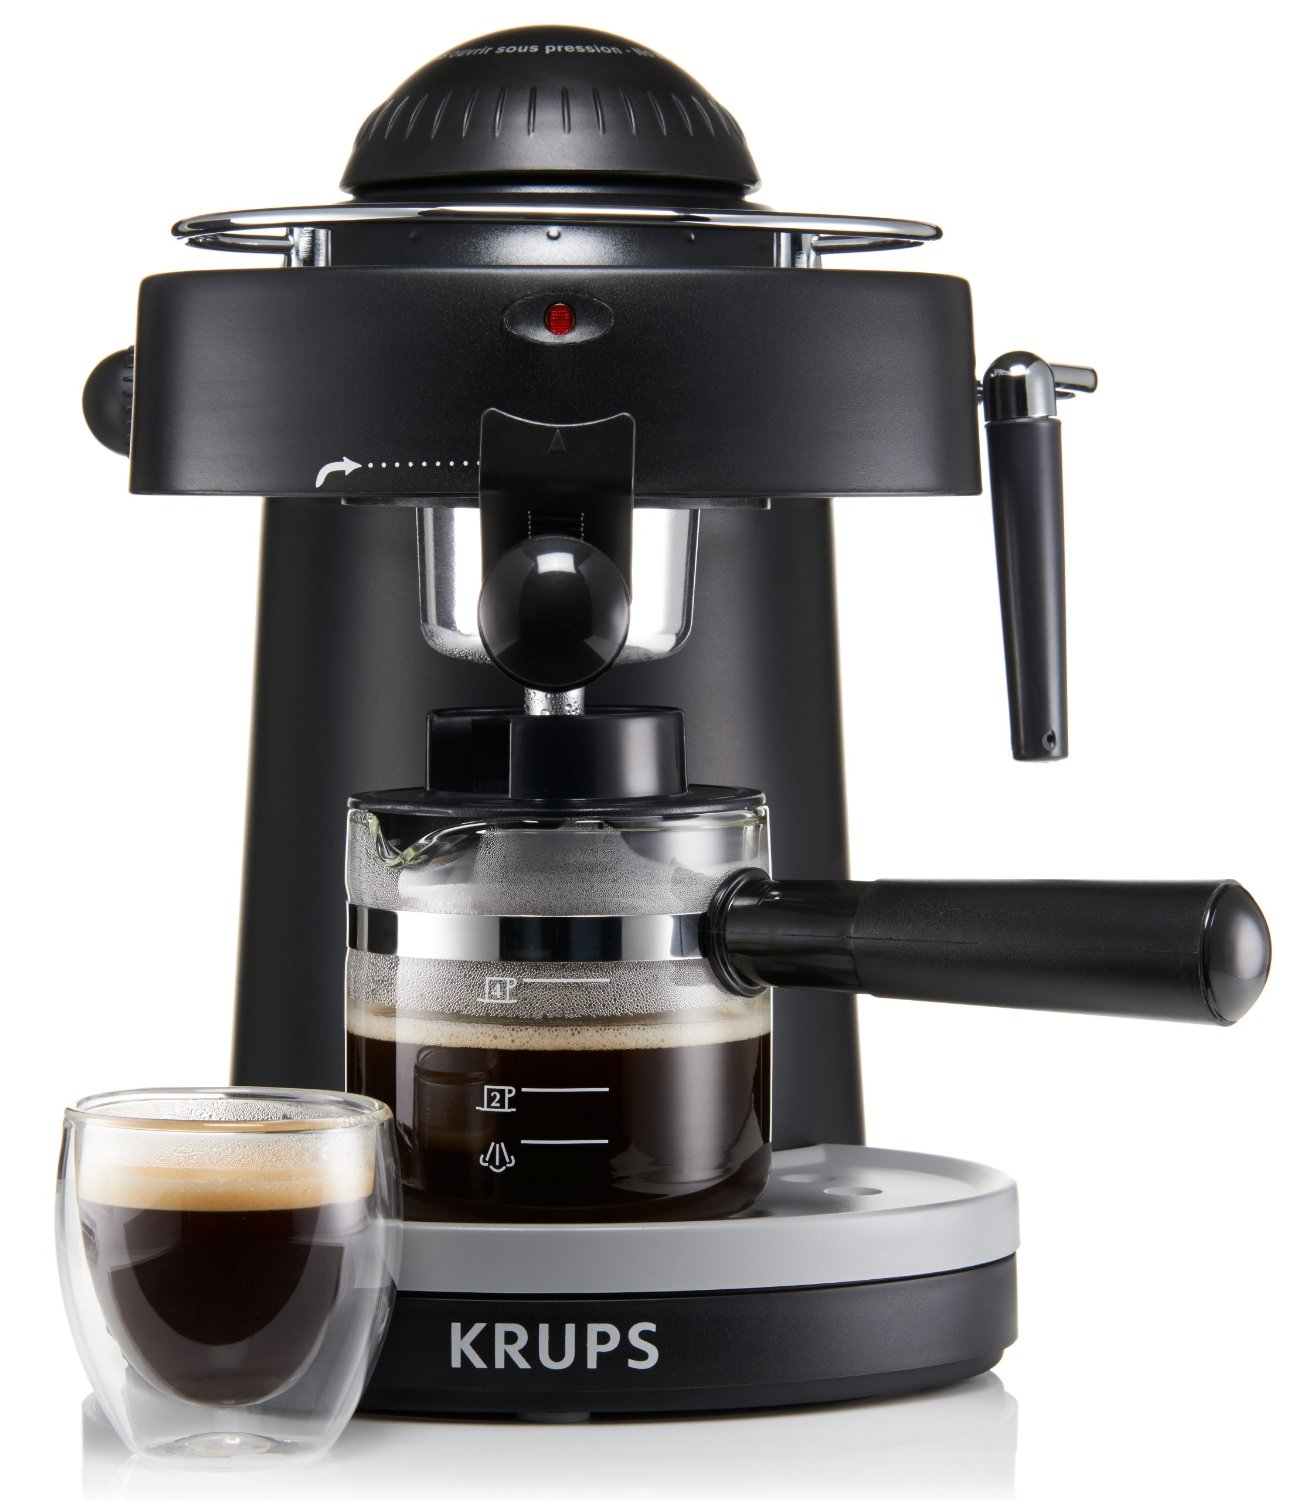 Best Coffee Maker Home 2015 : Best Home Coffee Makers 2017 - Buyer s Guide - LoveMyCoffeeCup.com